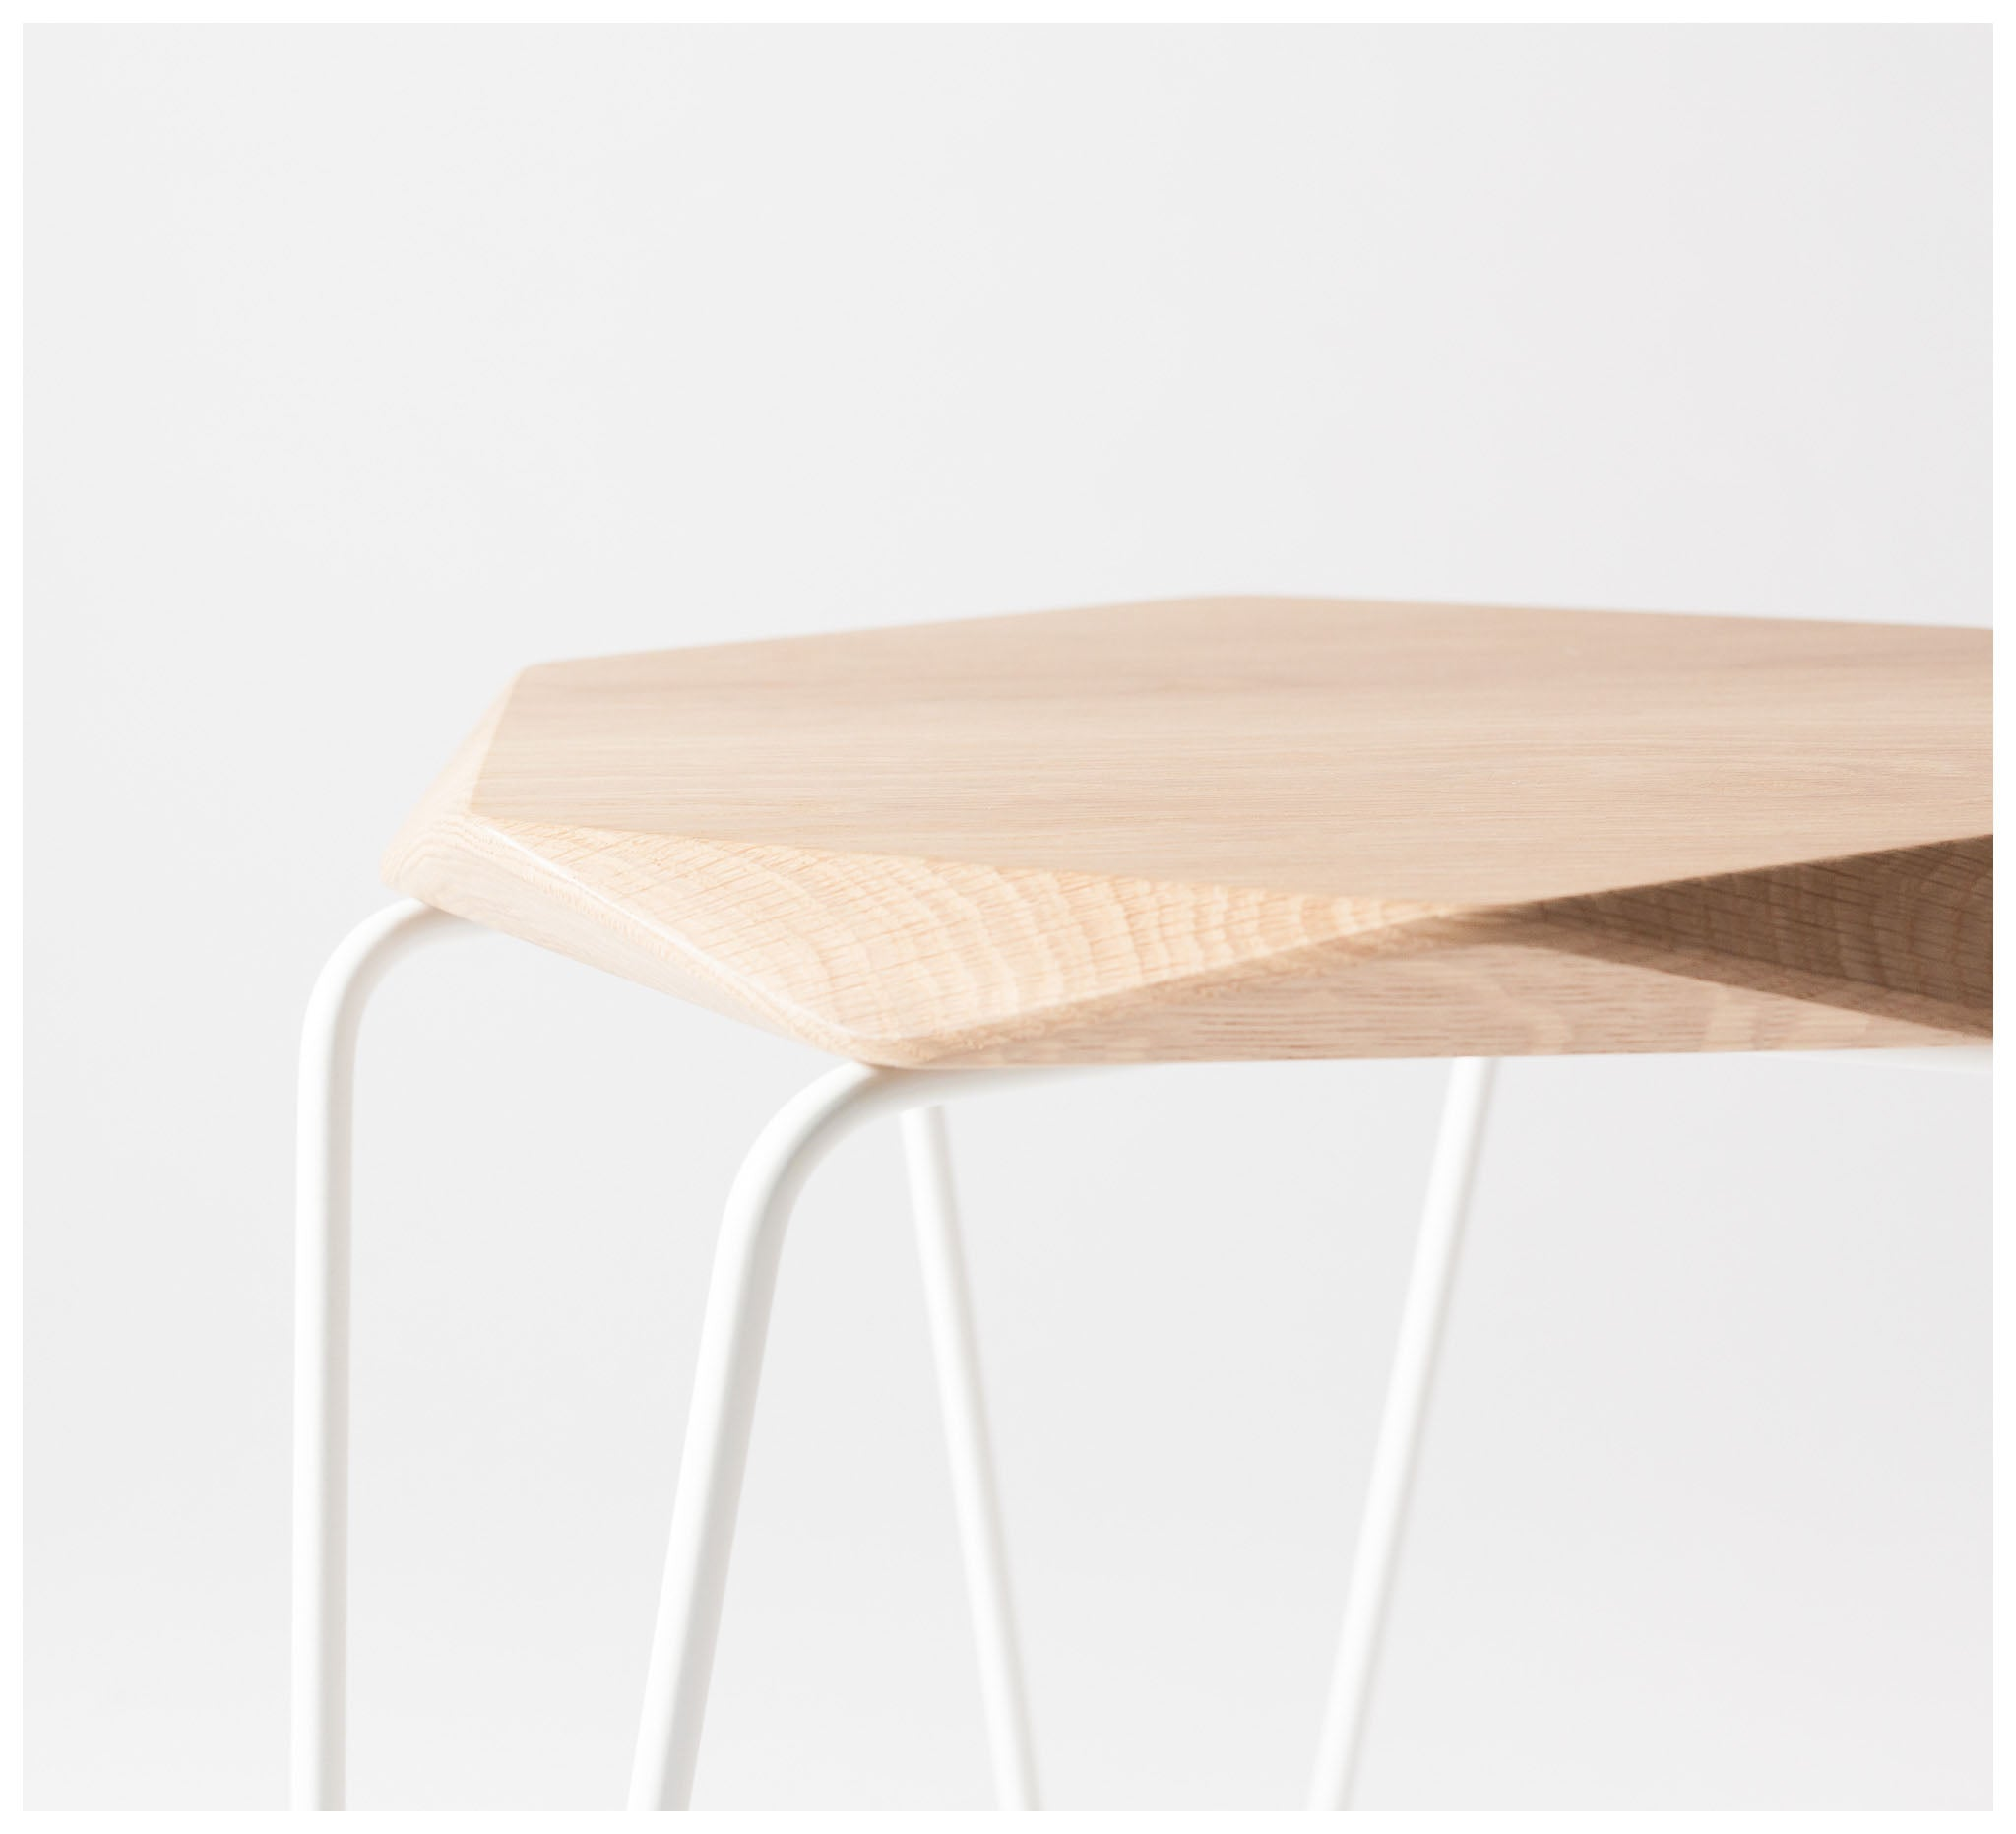 Tuckbox Design - Klein Gem Stool - Matte White Mild Steel and Timber